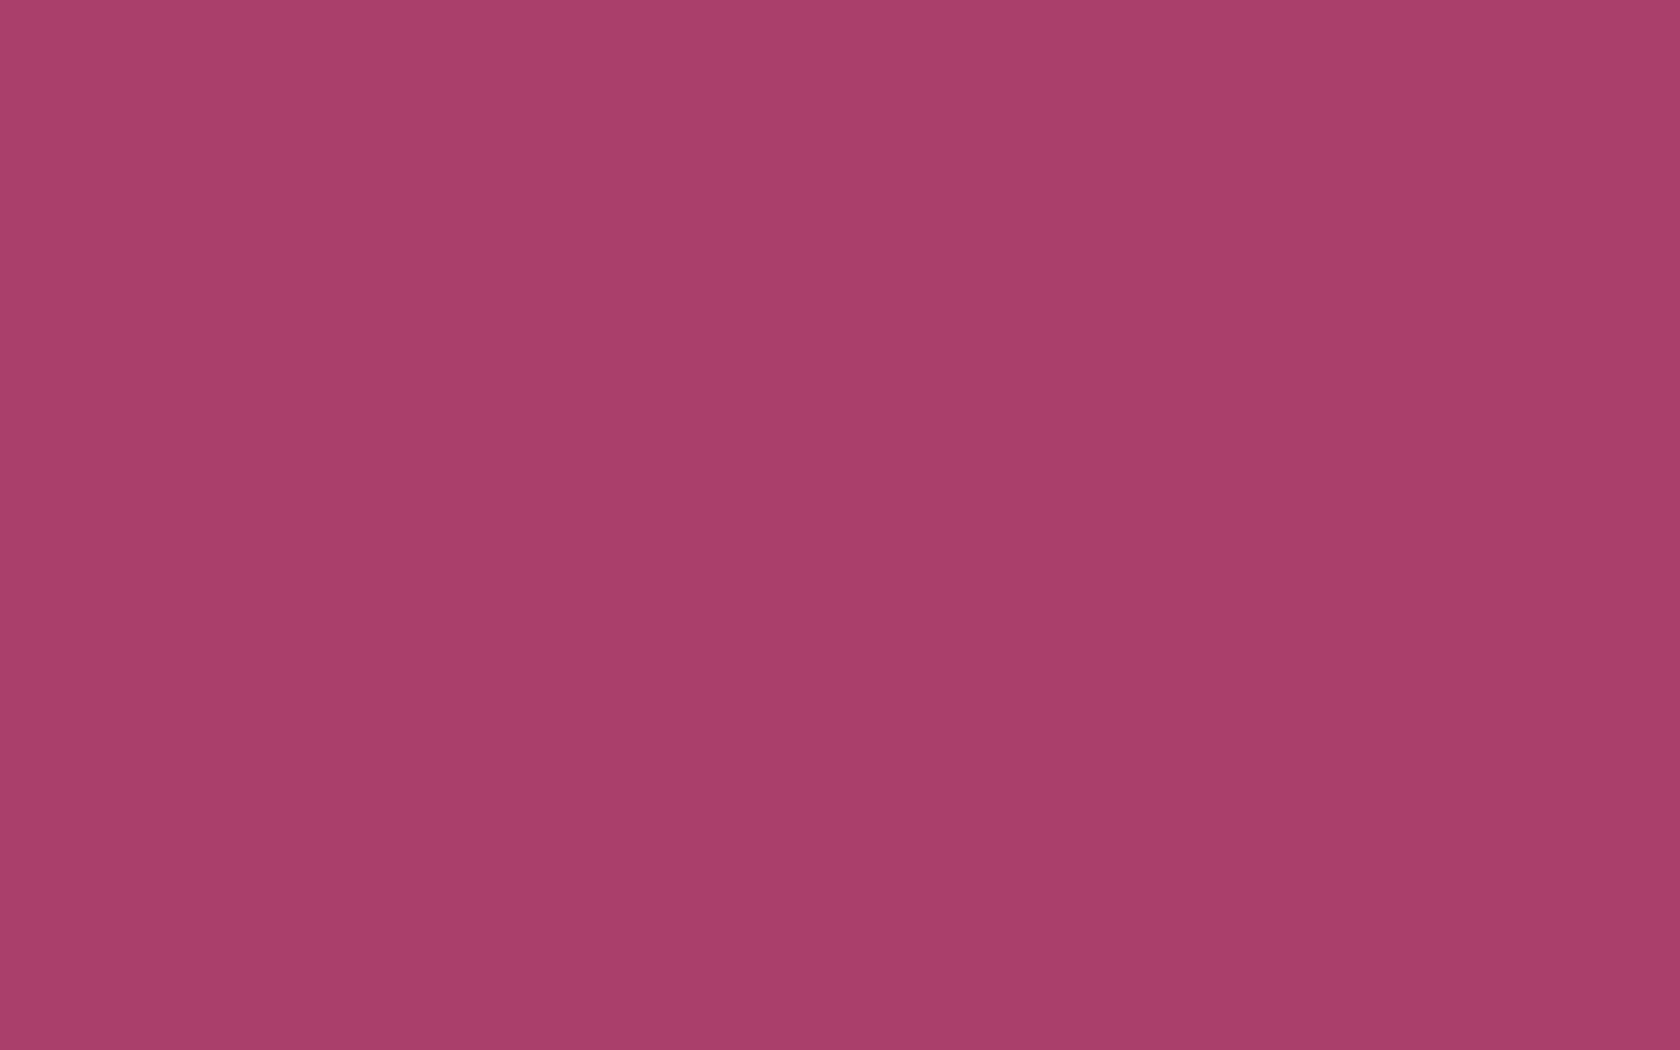 1680x1050 Medium Ruby Solid Color Background